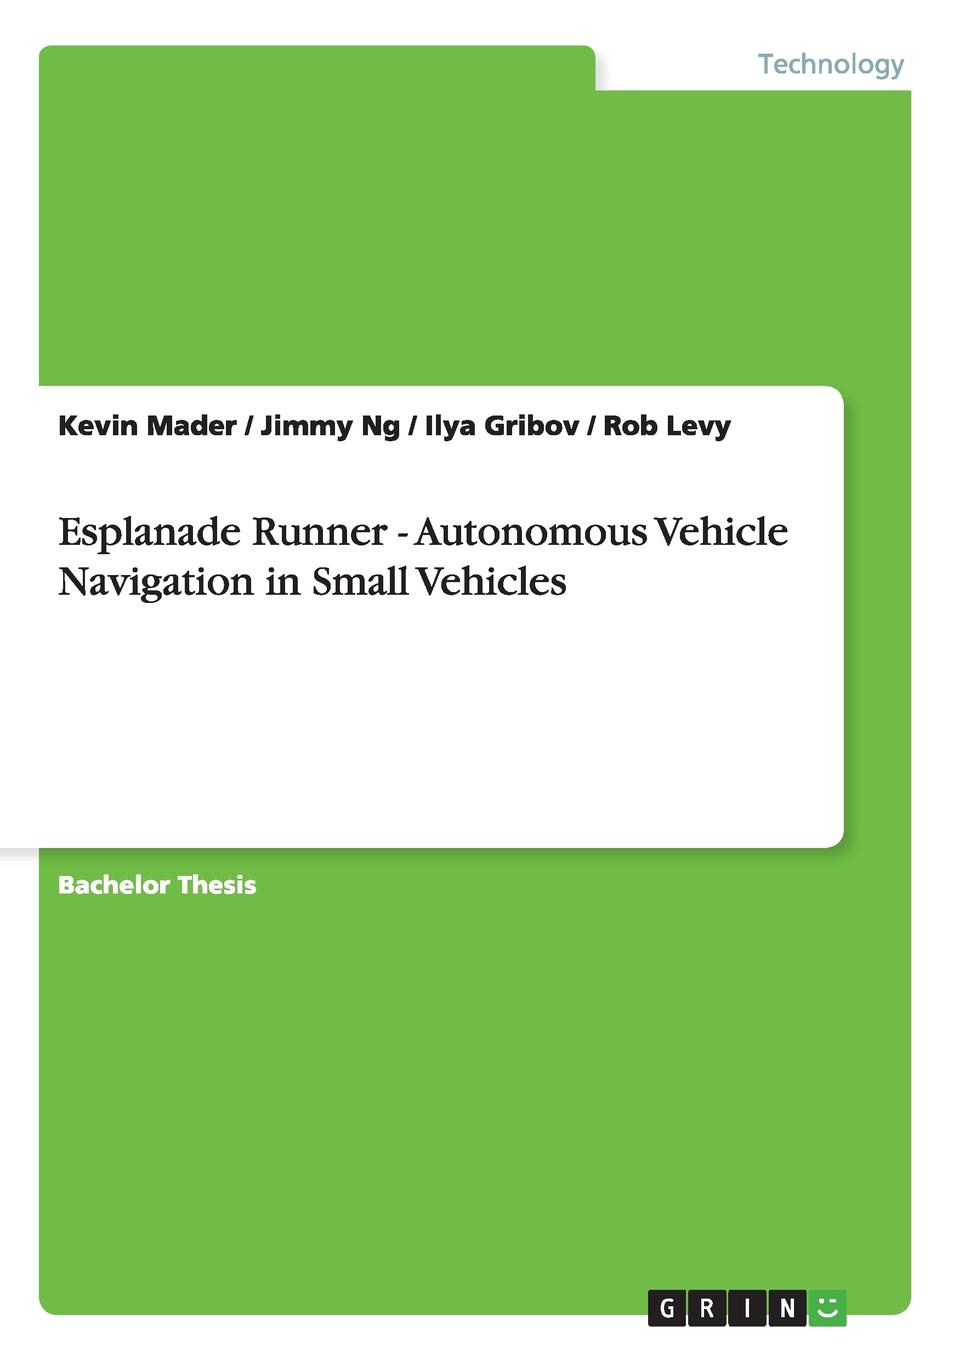 Kevin Mader, Jimmy Ng, Ilya Gribov Esplanade Runner - Autonomous Vehicle Navigation in Small Vehicles bo zhu formation control of multiple autonomous vehicle systems